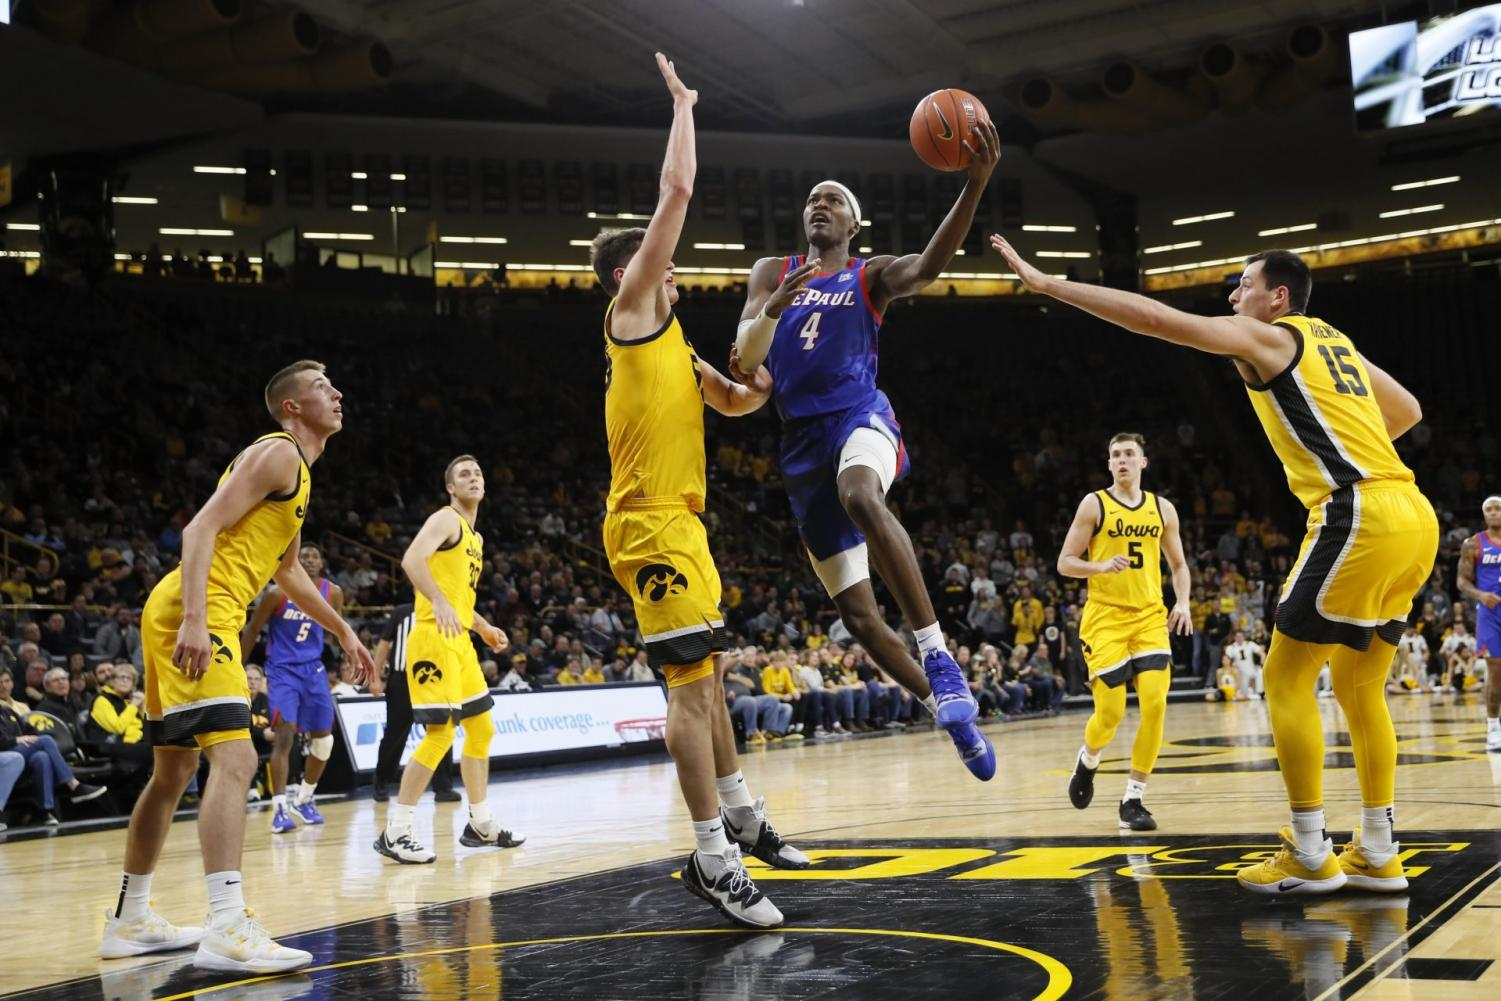 DePaul junior forward Paul Reet drives to the basket in the first half against Iowa at the Carver-Hawkeye Arena. The Blue Demons won the game 93-78.